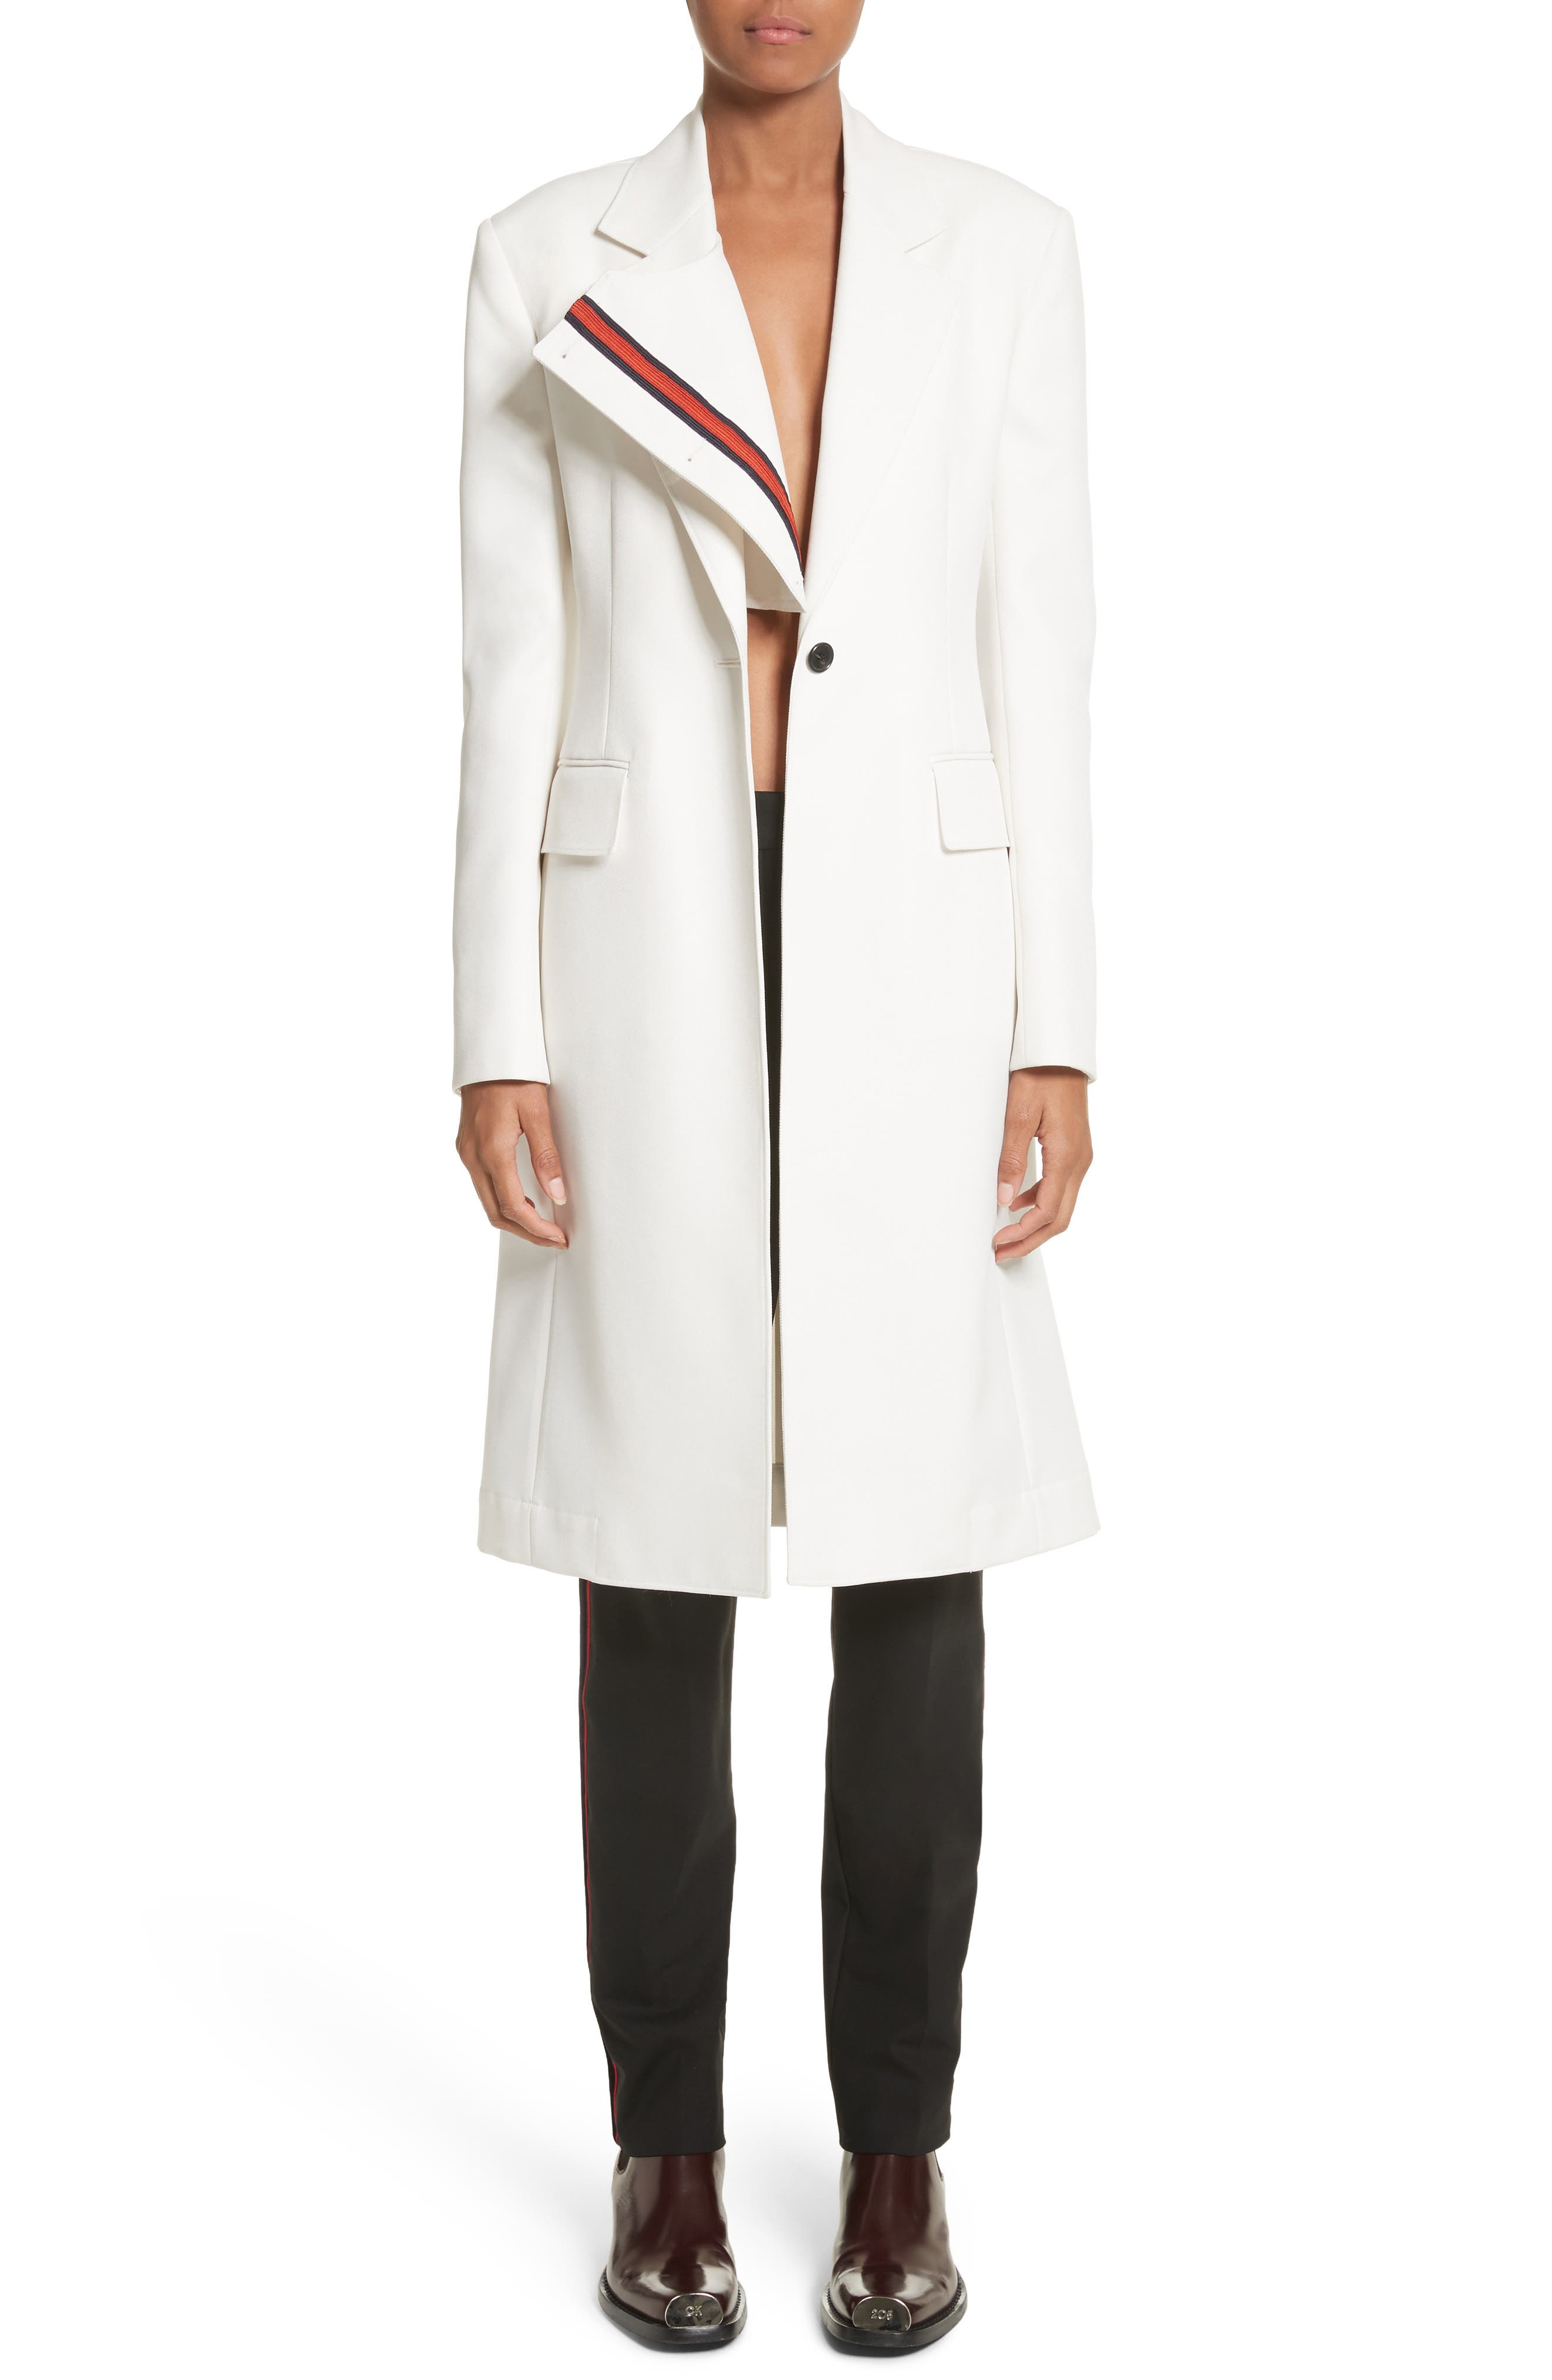 Calvin Klein 205W39NYC Uniform Stripe Coat